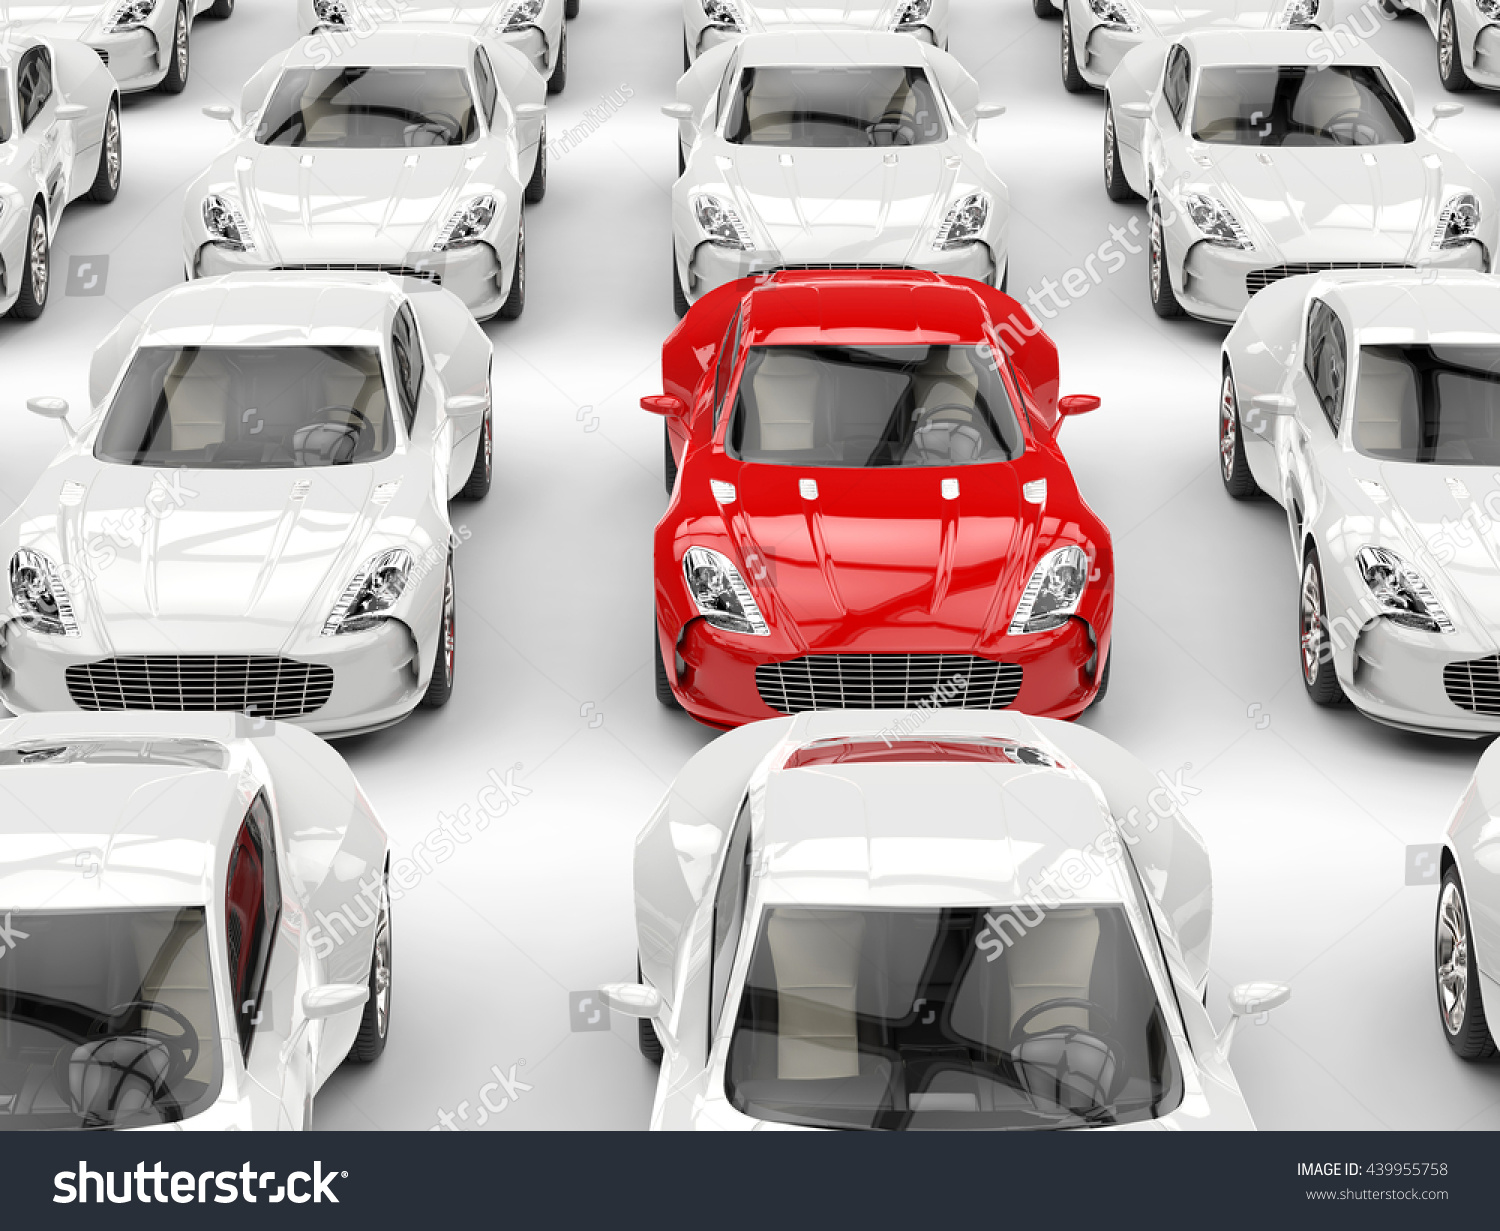 red sports car stands out crowd stock illustration. Black Bedroom Furniture Sets. Home Design Ideas